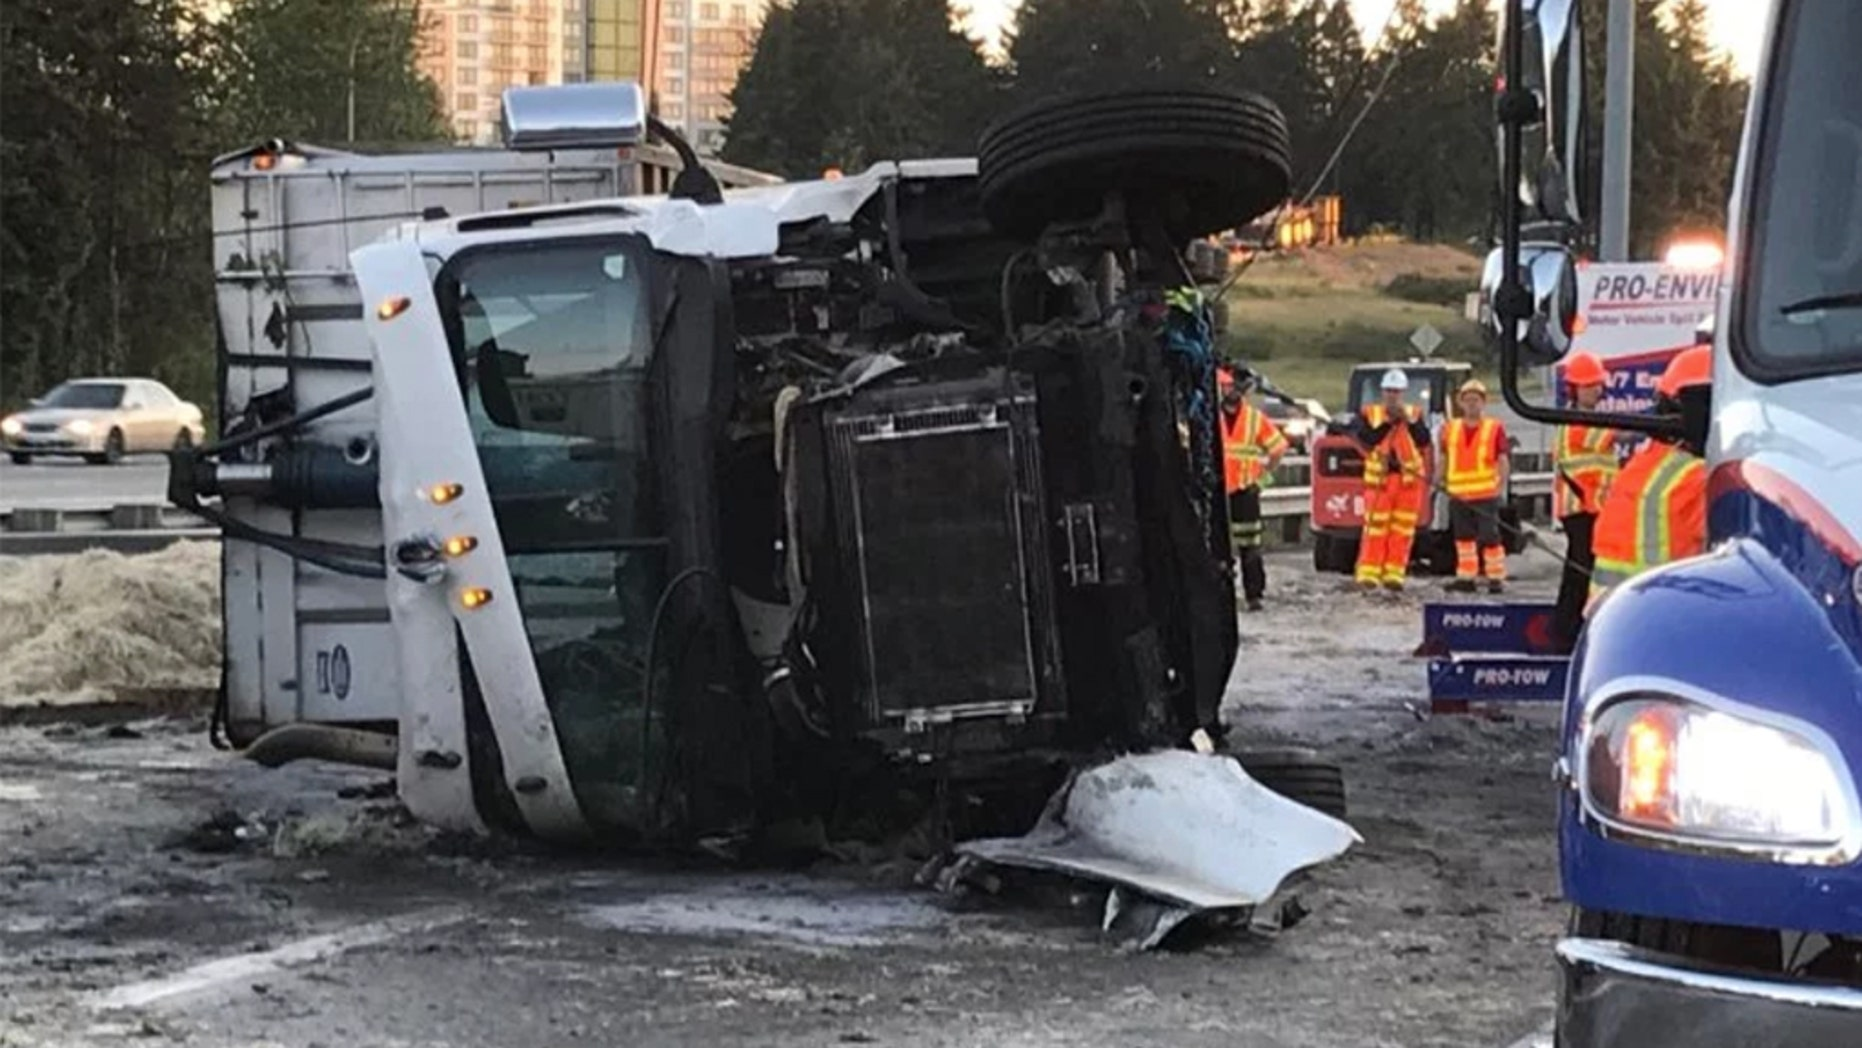 A semi overturned in Washington state Wednesday, snarling the early morning commute.